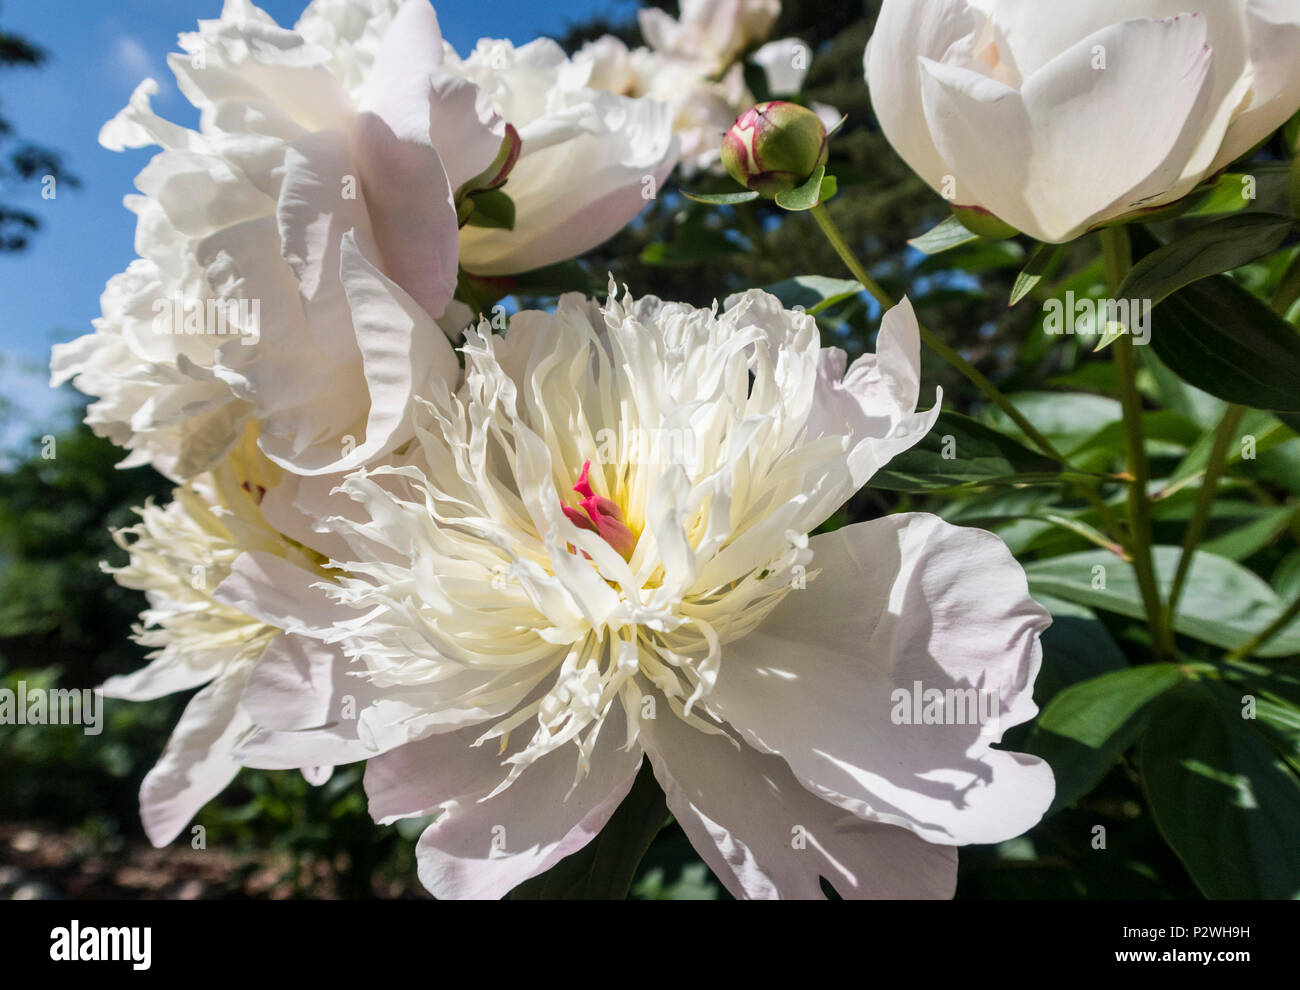 White highly scented and fragrant peony Duchesse de Nemours - Stock Image